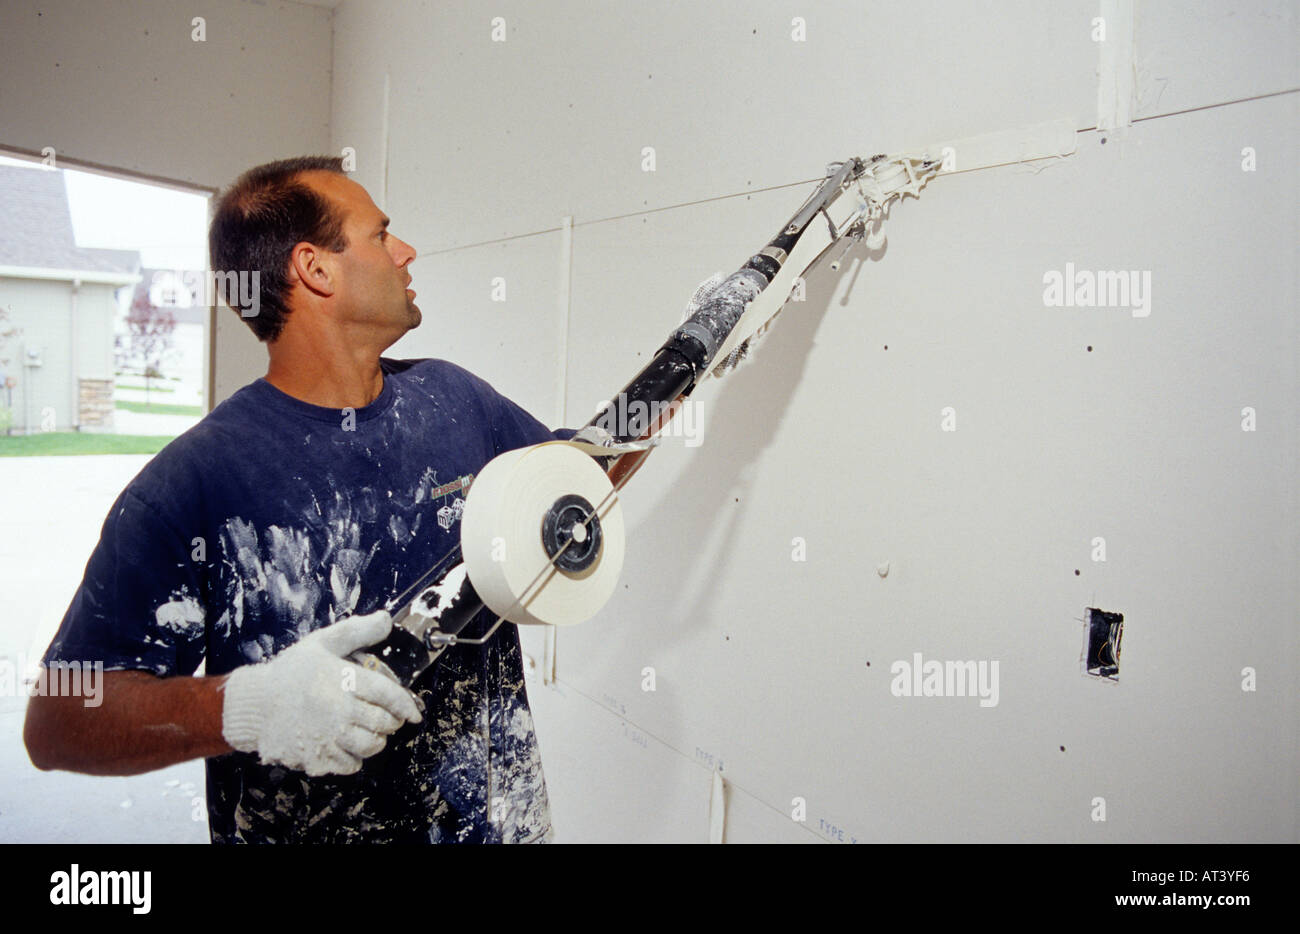 mobile home drywall with Stock Photo A Dry Wall Worker Uses A Drywall Tape Applicator Called A Bazooka 5287925 on 4194315 further Aluminum Wiring In Branch Circuits besides 90683 Acoustics Ceiling Panels furthermore Done Work Mobile Homes Home Dec 46865 in addition Challenge Project Management Triangle.